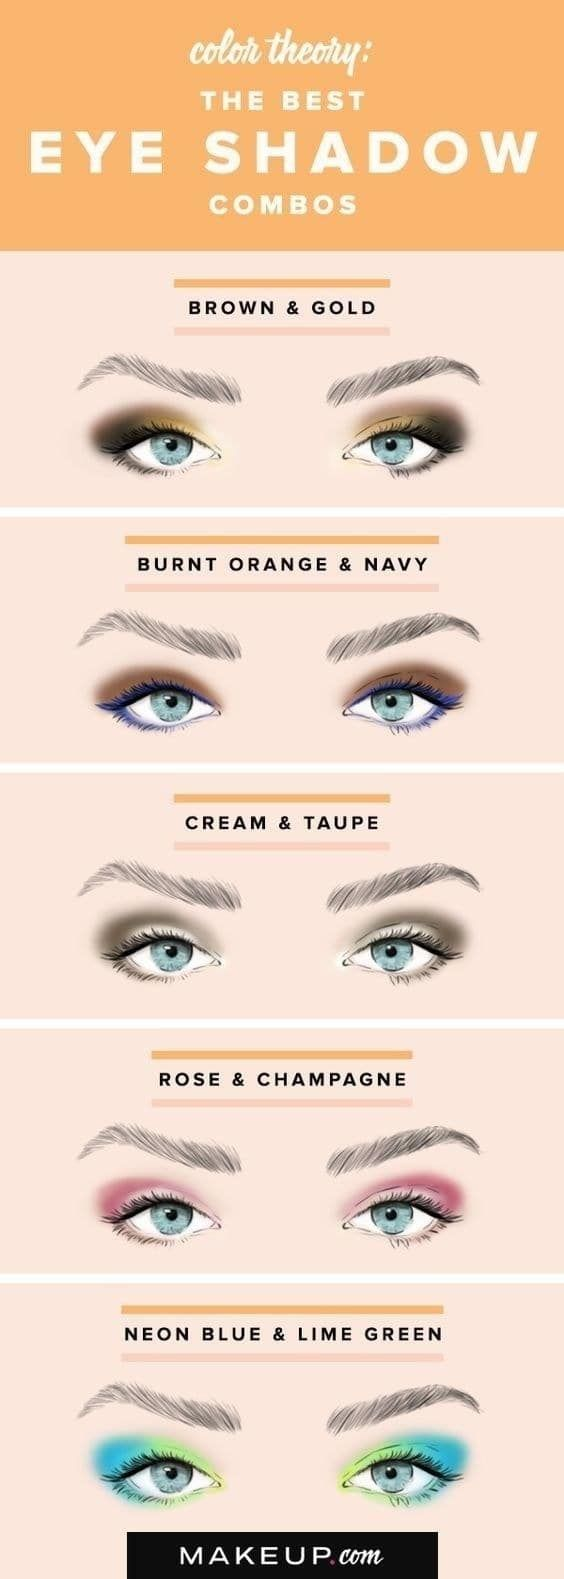 Best 25 eye color charts ideas on pinterest baby eye color best 25 eye color charts ideas on pinterest baby eye color chart character description and eye color facts nvjuhfo Image collections